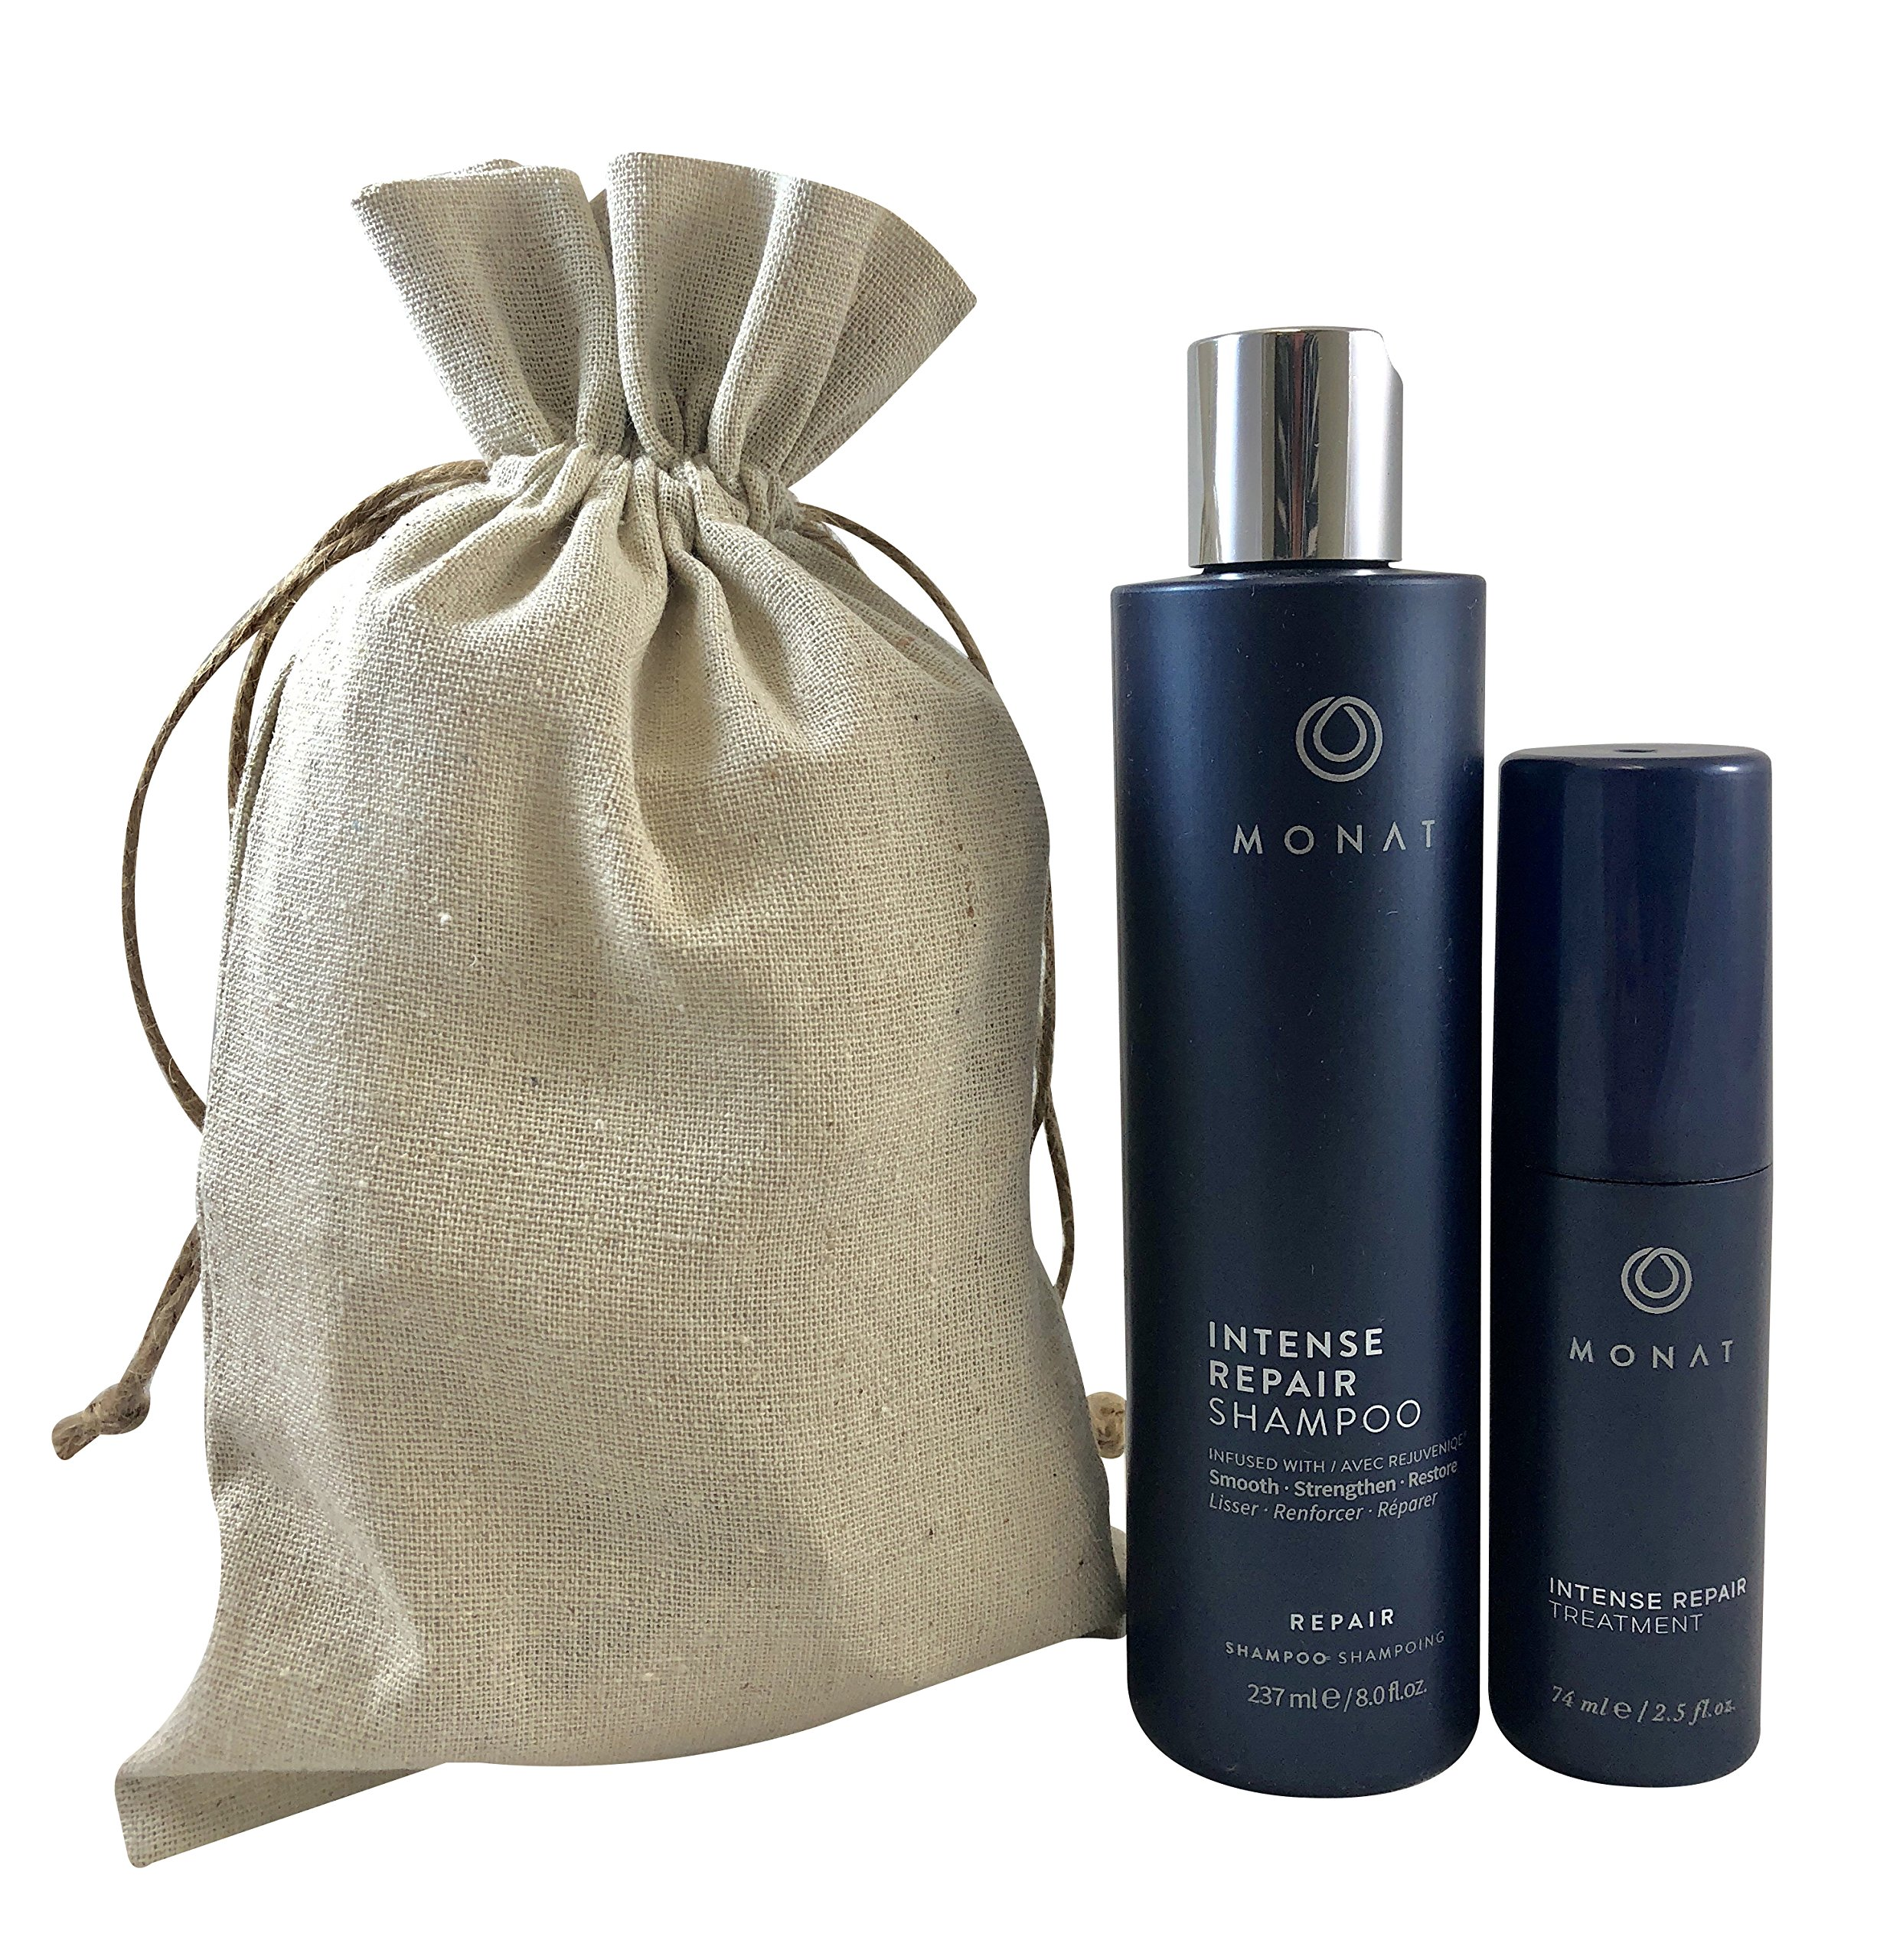 Monat Regrowth (Let it Grow) System - Intense Repair Shampoo and Intense Repair Hair Treatment Bundle with Free Linen Bag by Monat